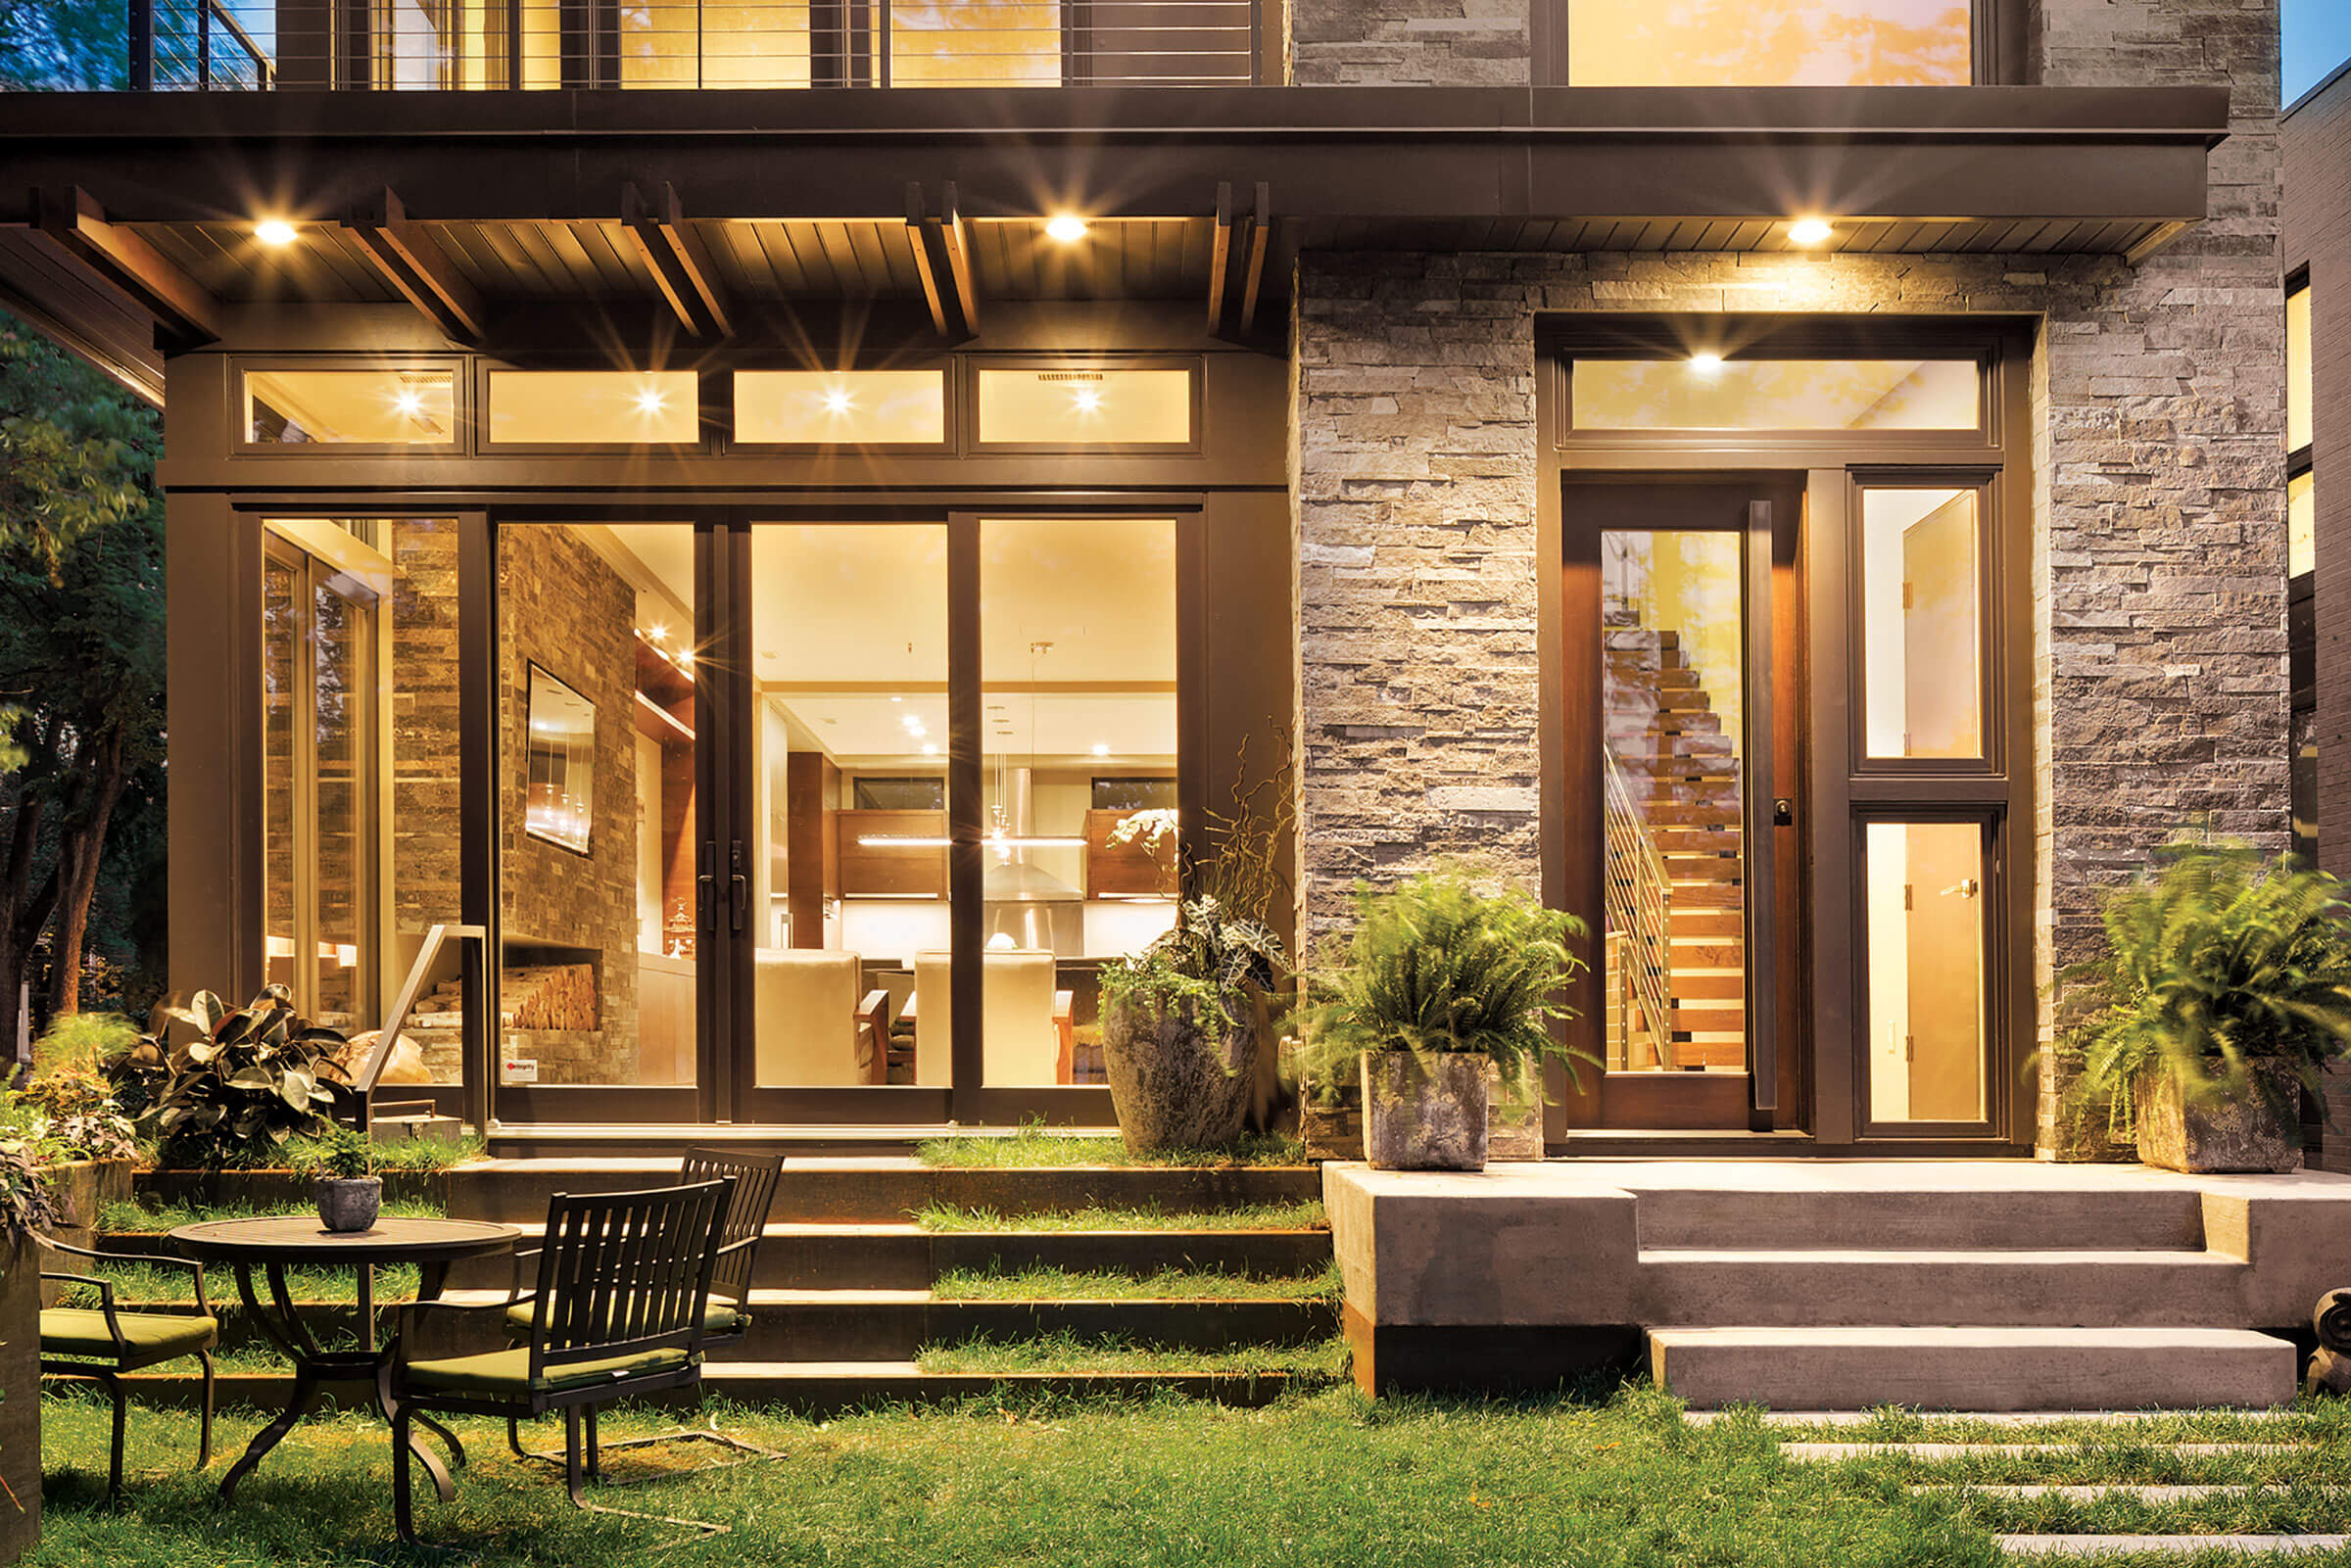 Beautiful Exterior View of Lake House With Marvin Elevate Sliding French Door